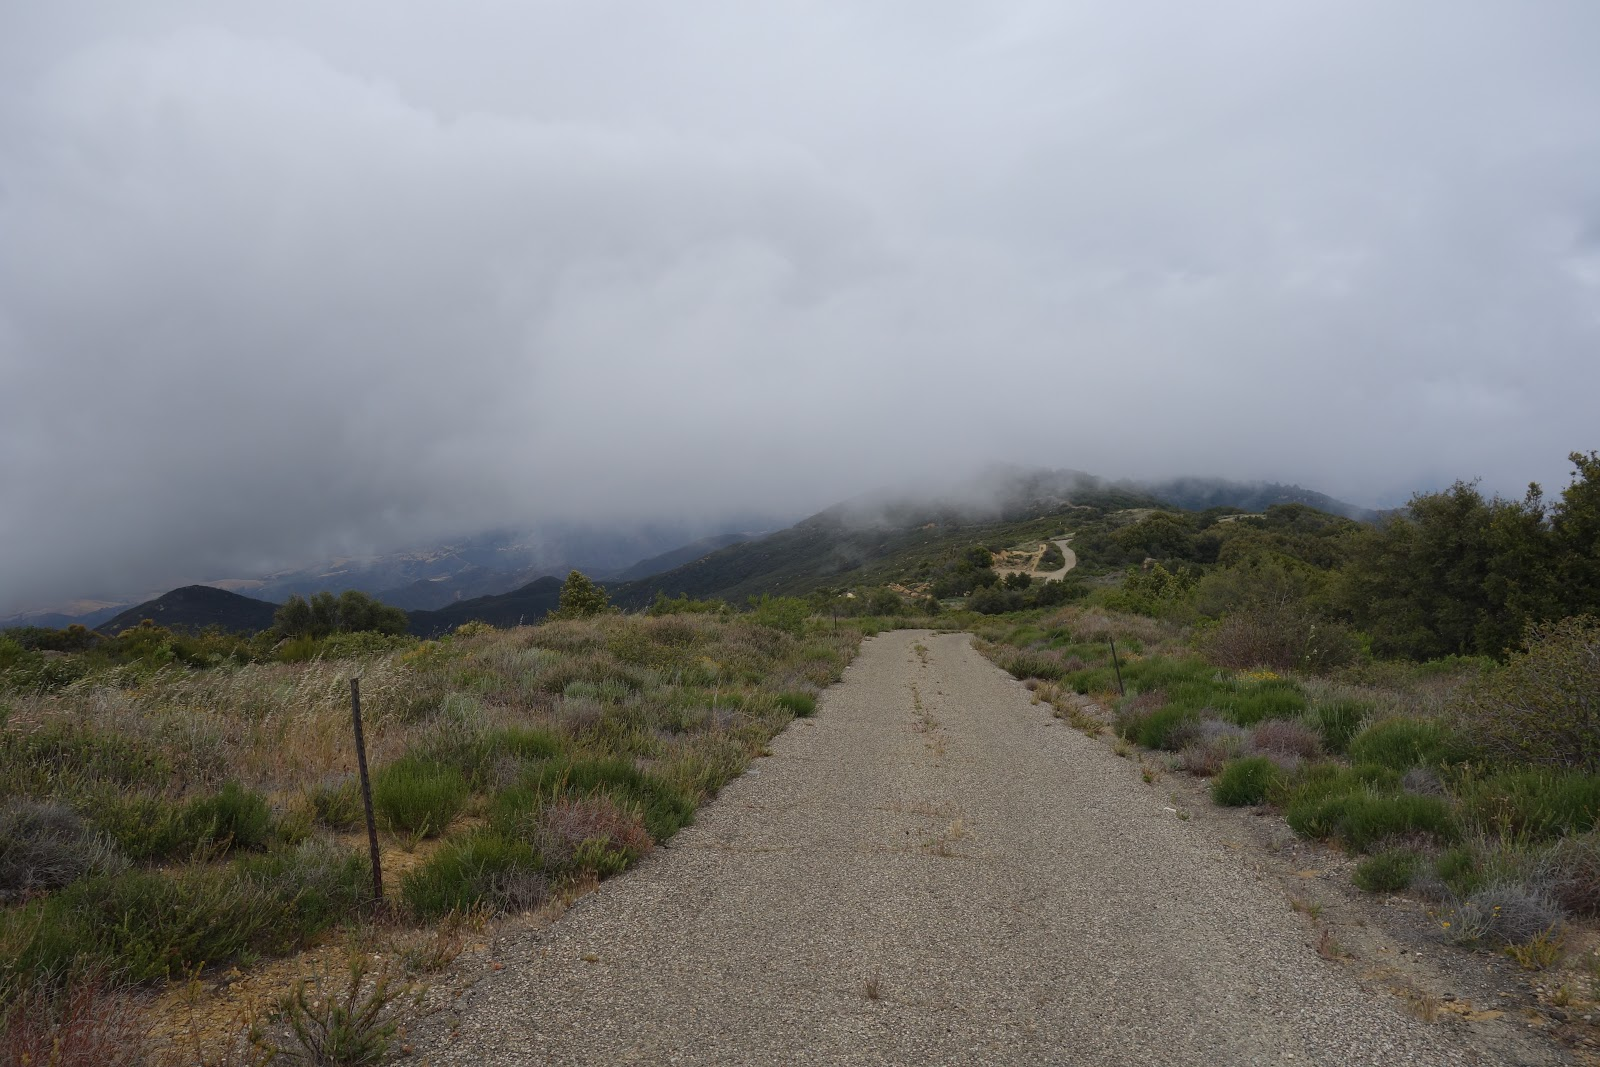 Bicycle climb to top of Refugio Bike Climb - W. Camino Cielo - looking down at road from top of climb